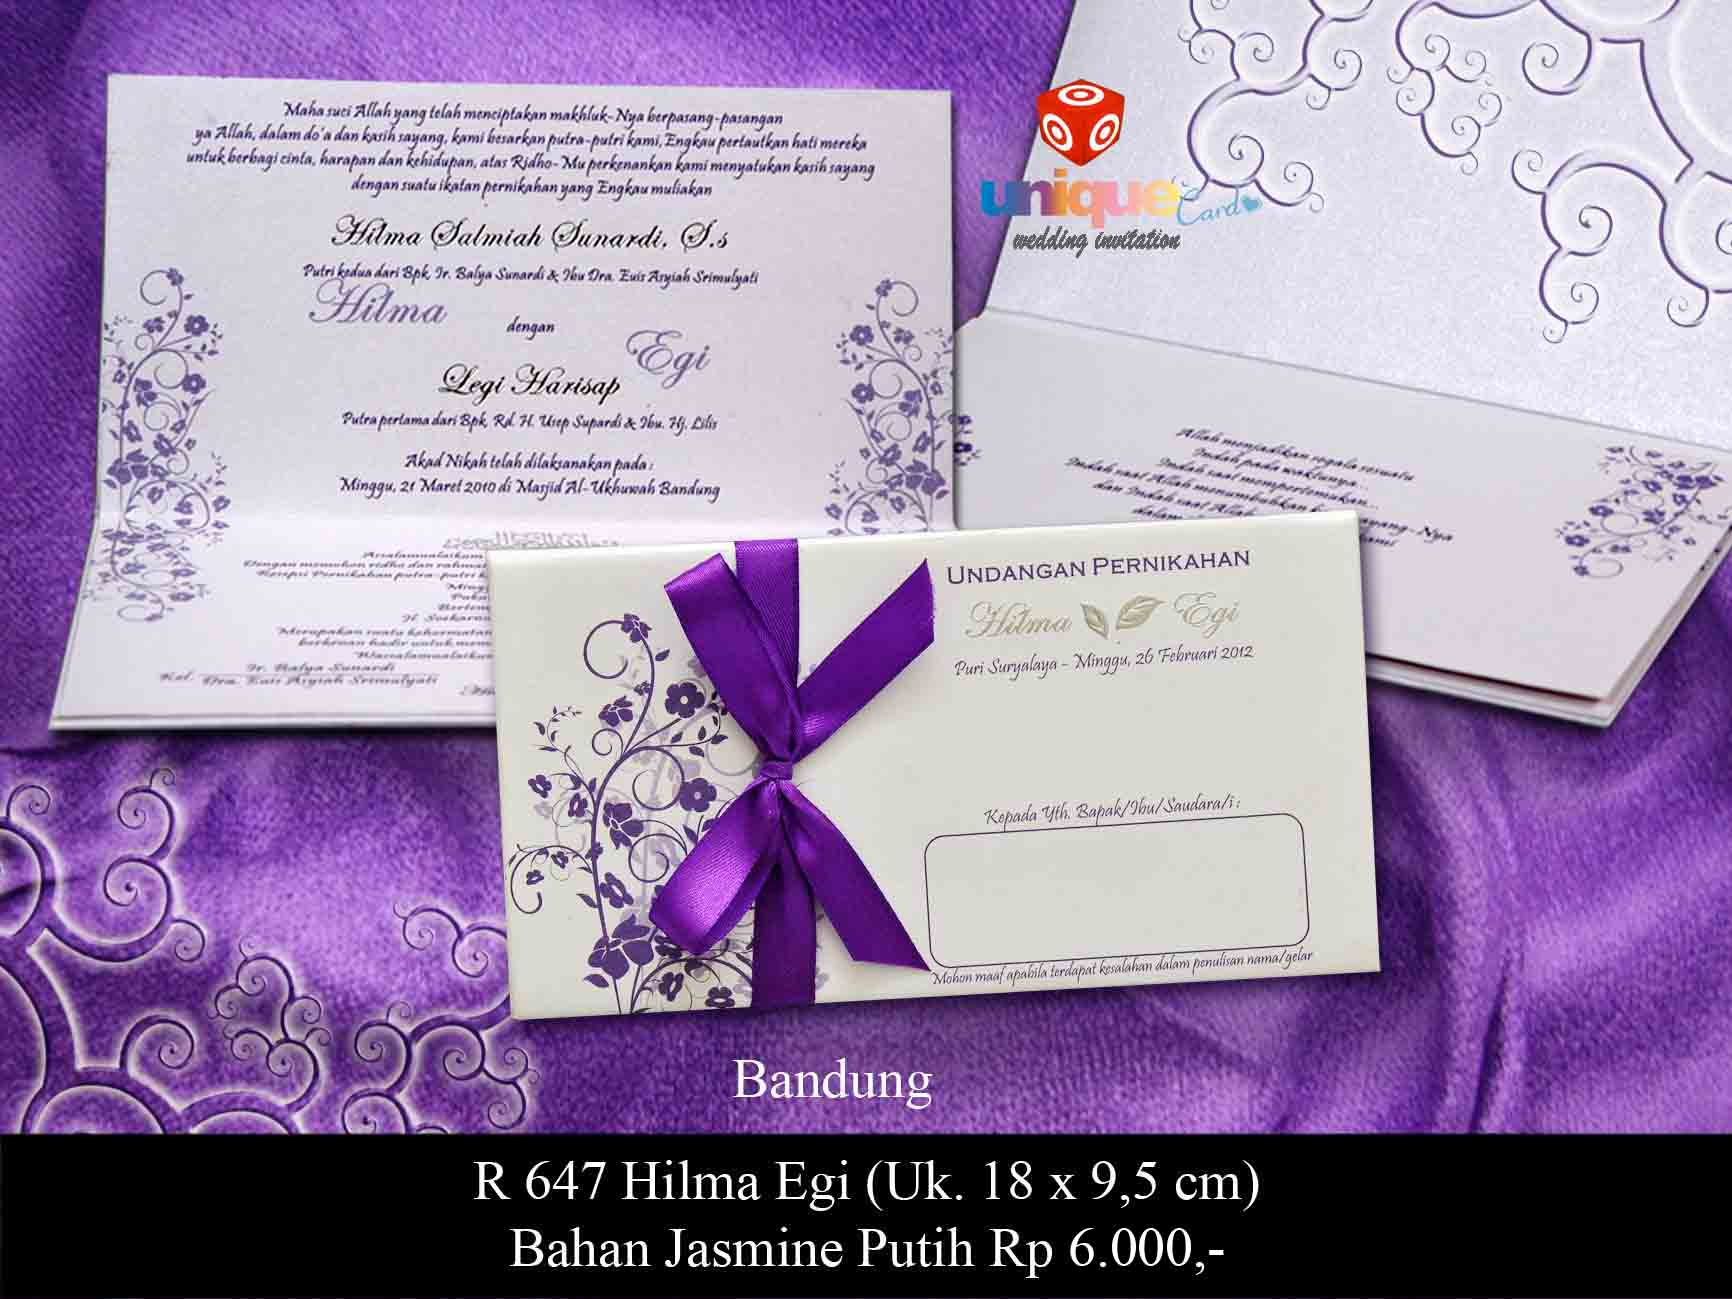 Undangan Pernikahan Hilma Egi Unique Card Wedding